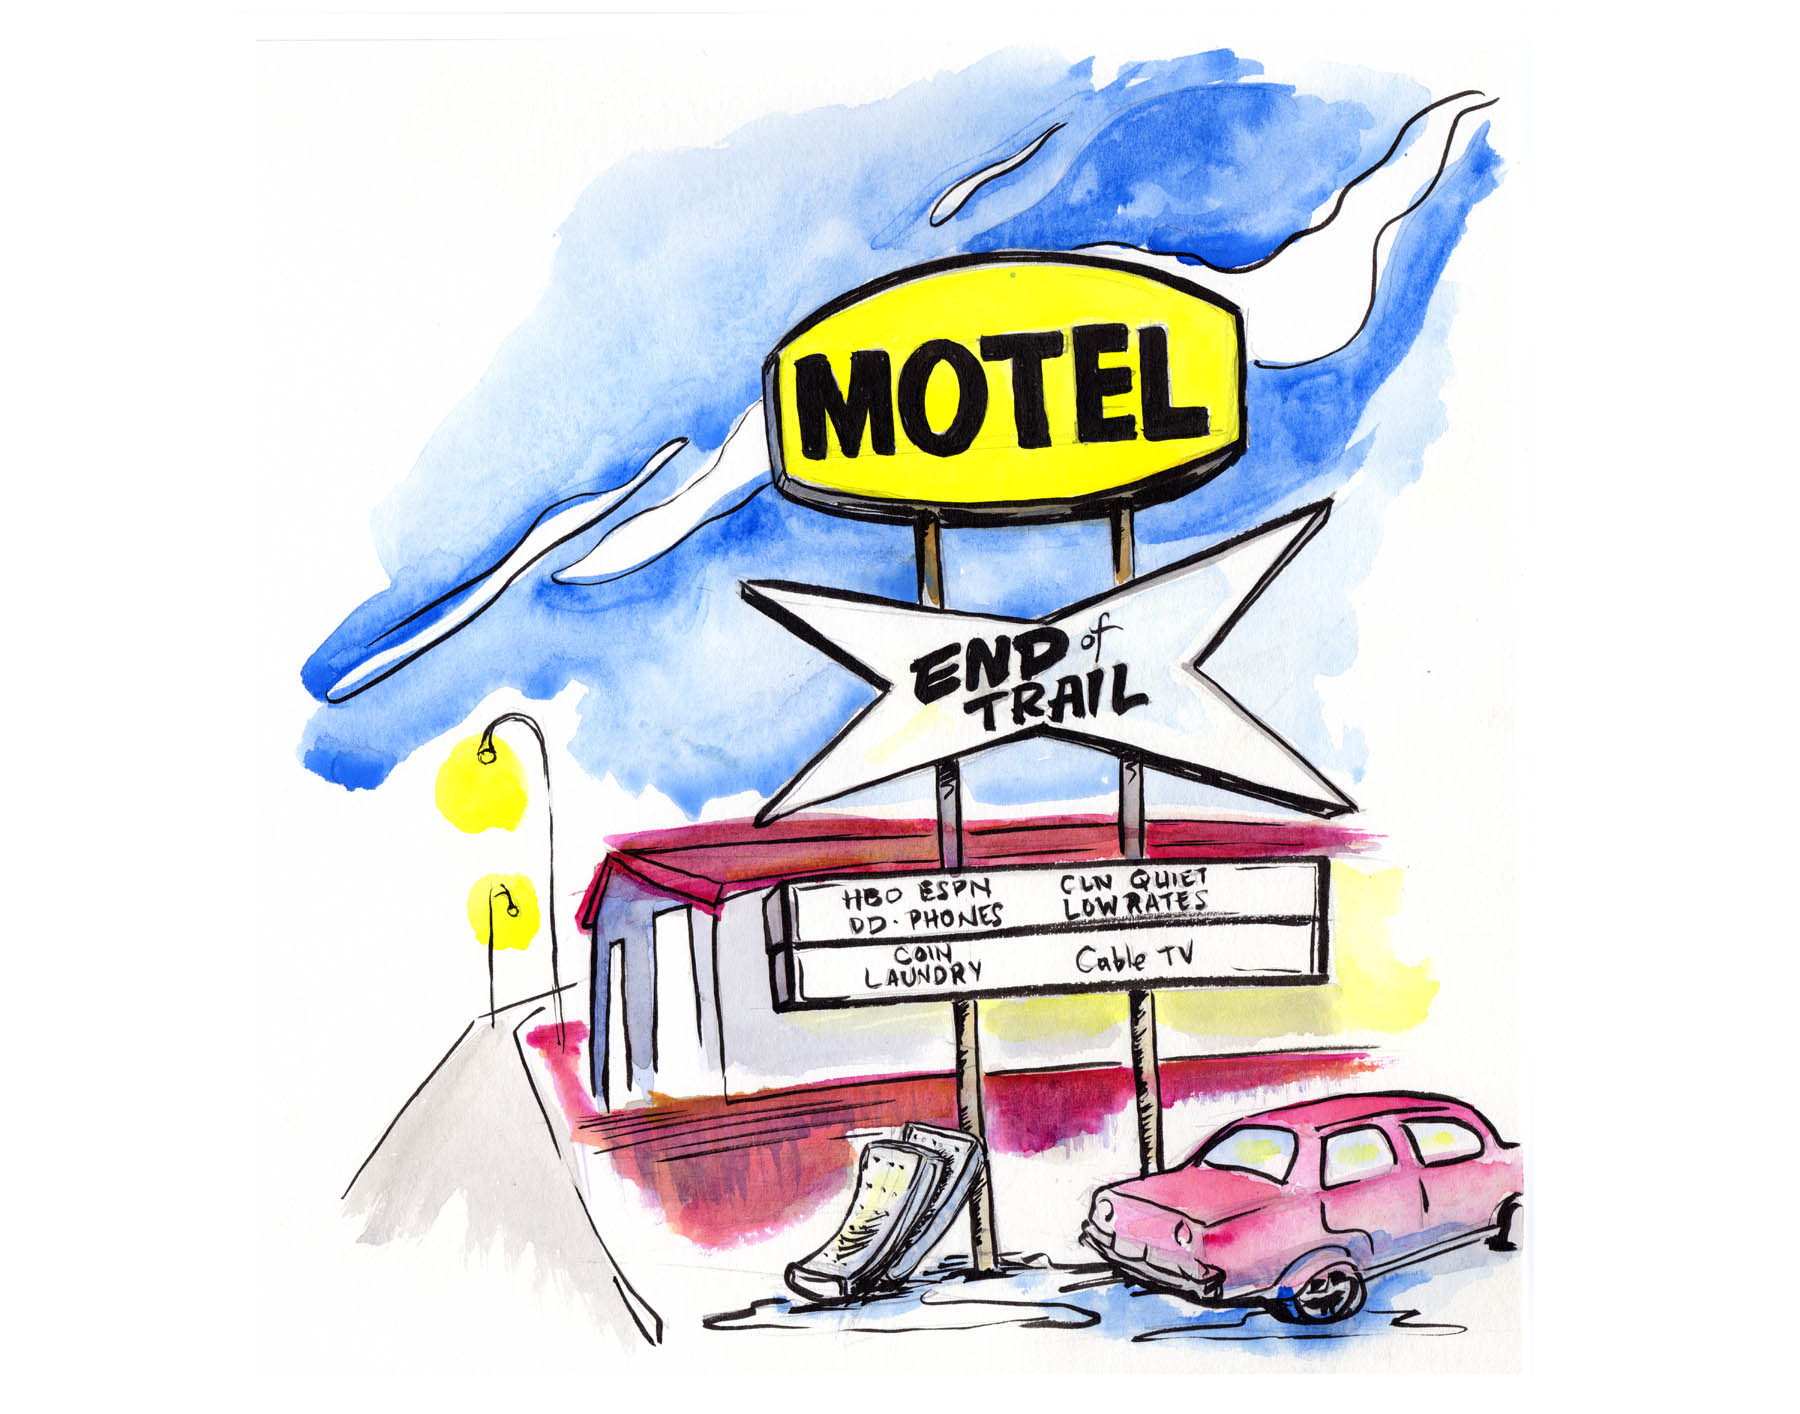 End of Trail Motel